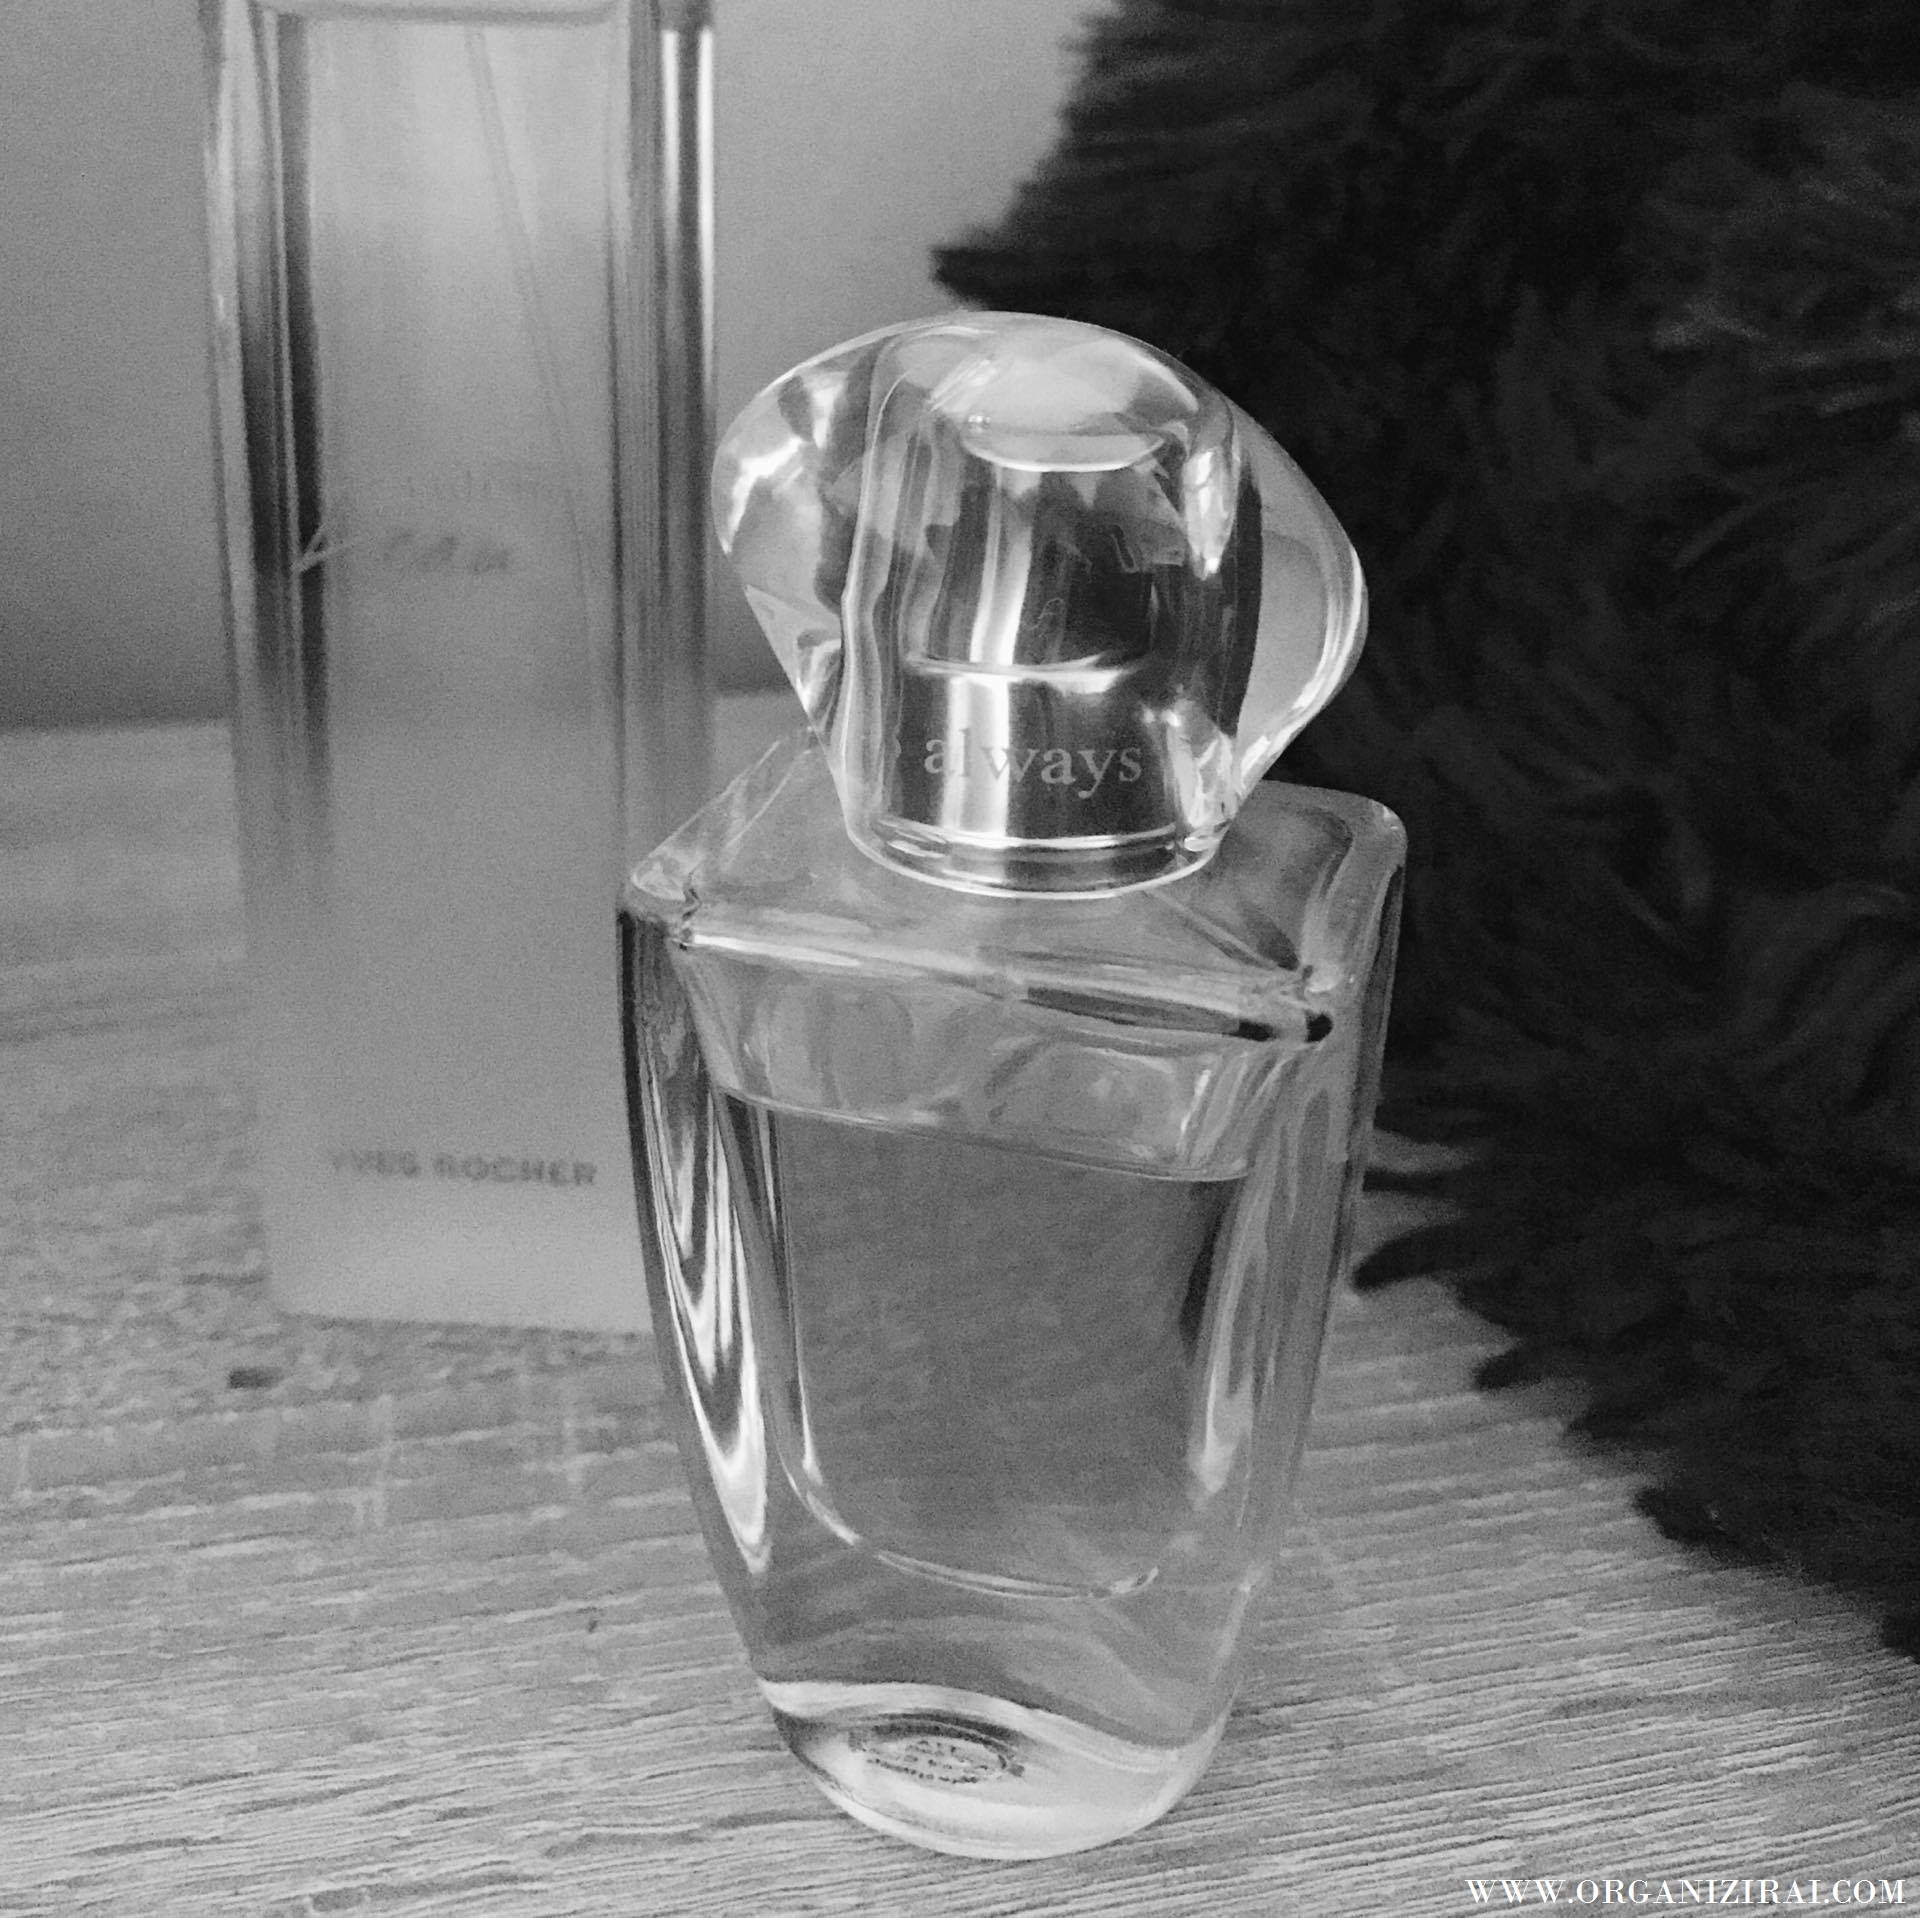 perfume-avon-today-tommorow-always-tips-to-design-your-bedroom-organizing-blog-liestyle-organizirai.com